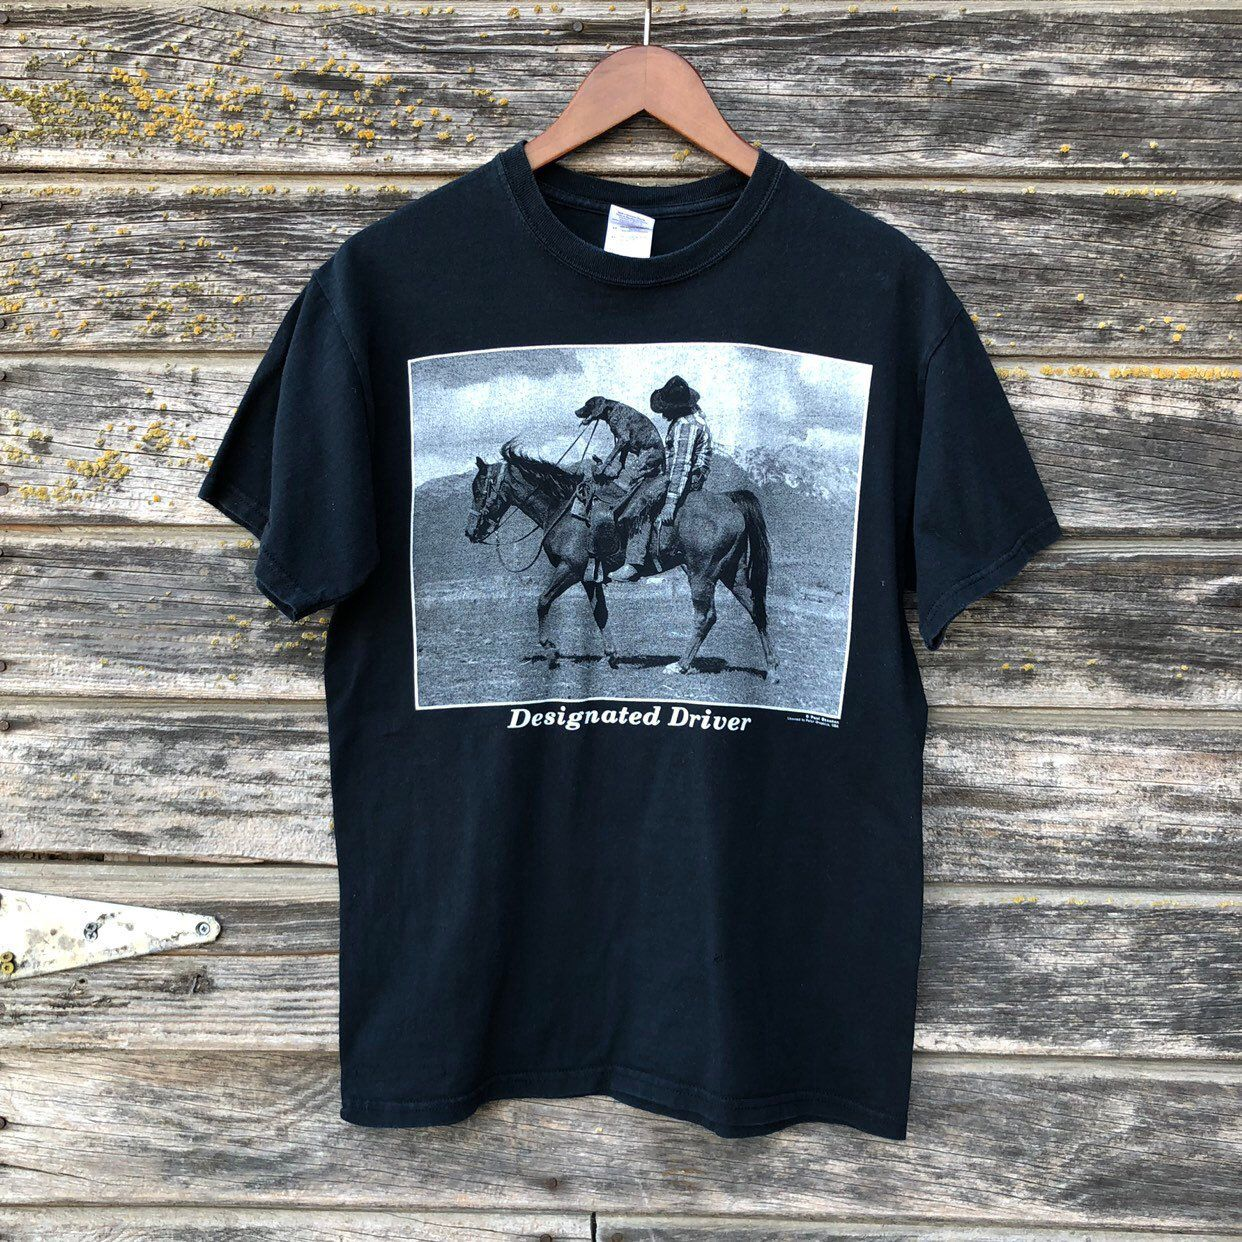 4e74bac6 Designated Driver T-shirt dog riding horse drunk cowboy Paul Stanton  graphic tee vtg 90s men S/M 38